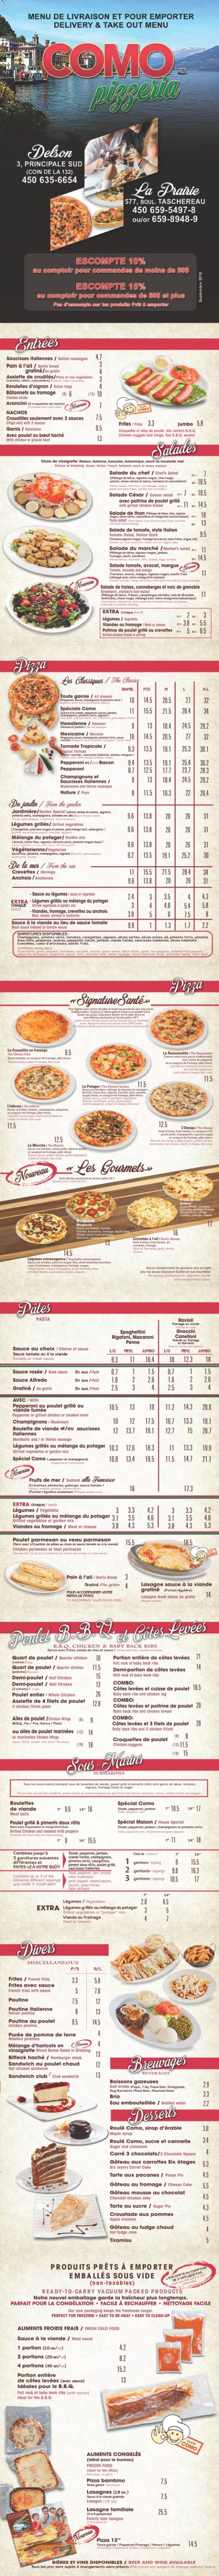 Como Pizzeria (Delson) inc. (Flyer)